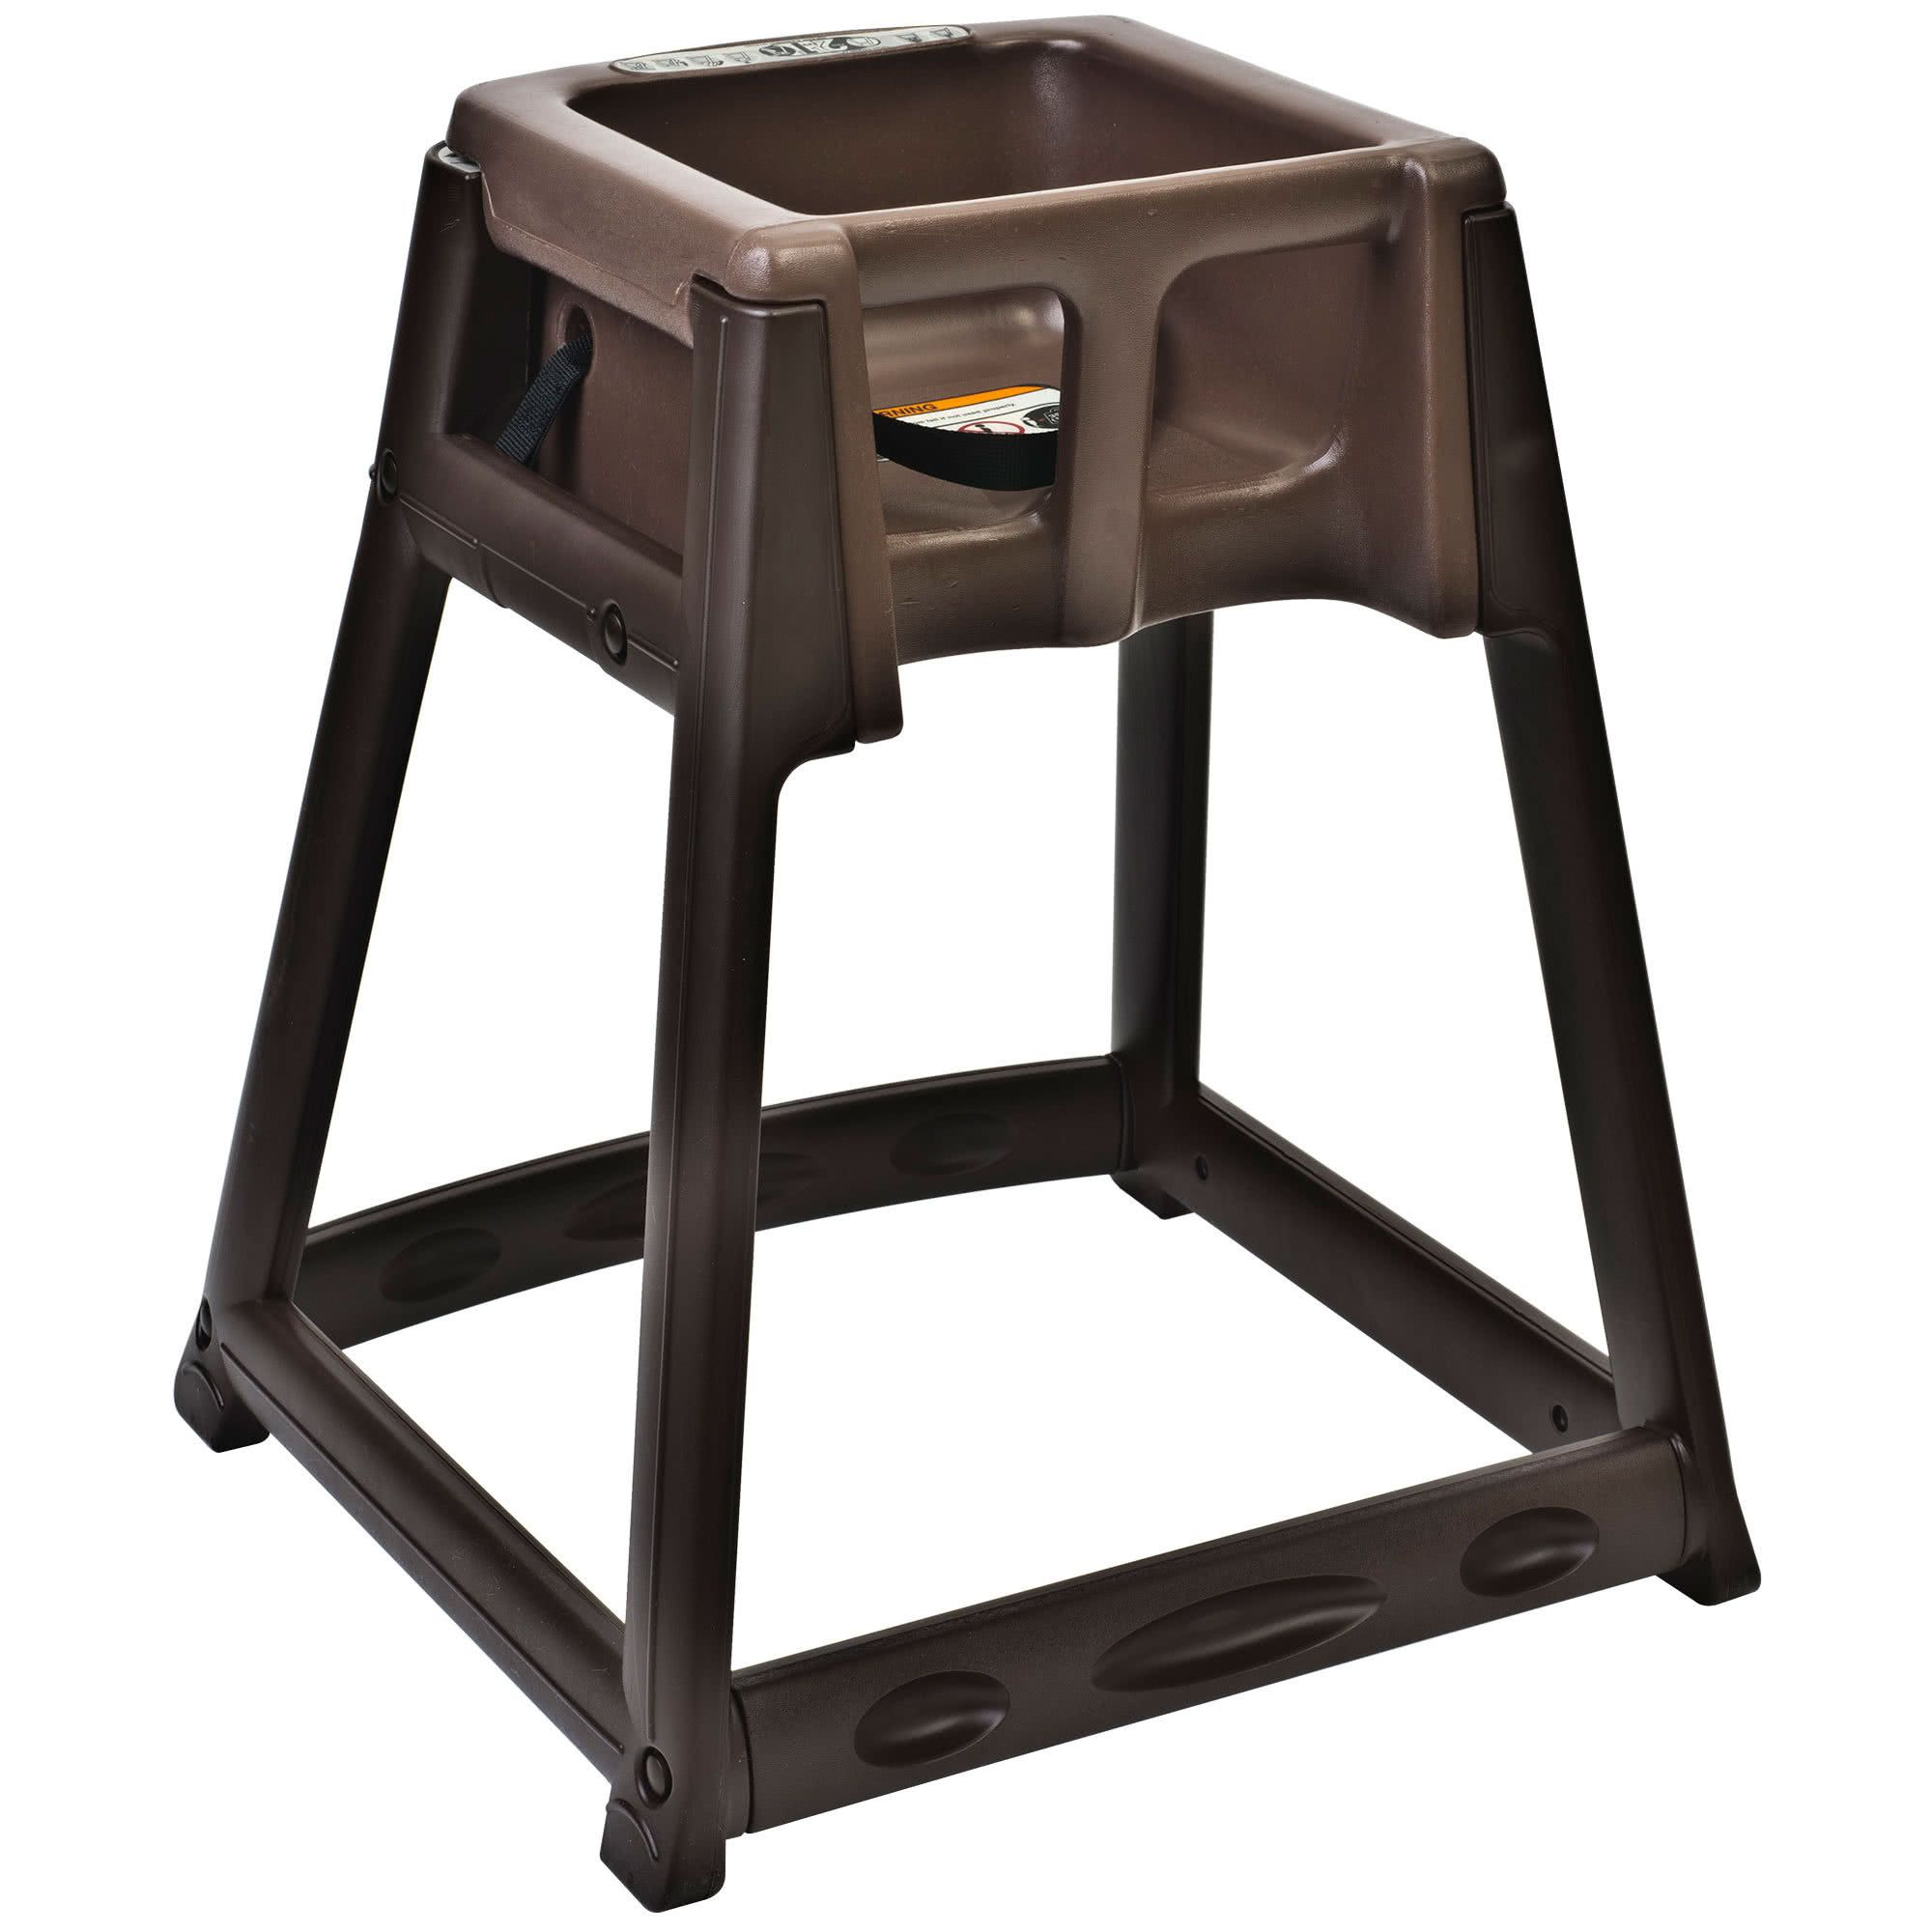 Koala Kare KB866 09 KidSitter Brown Convertible Plastic High Chair